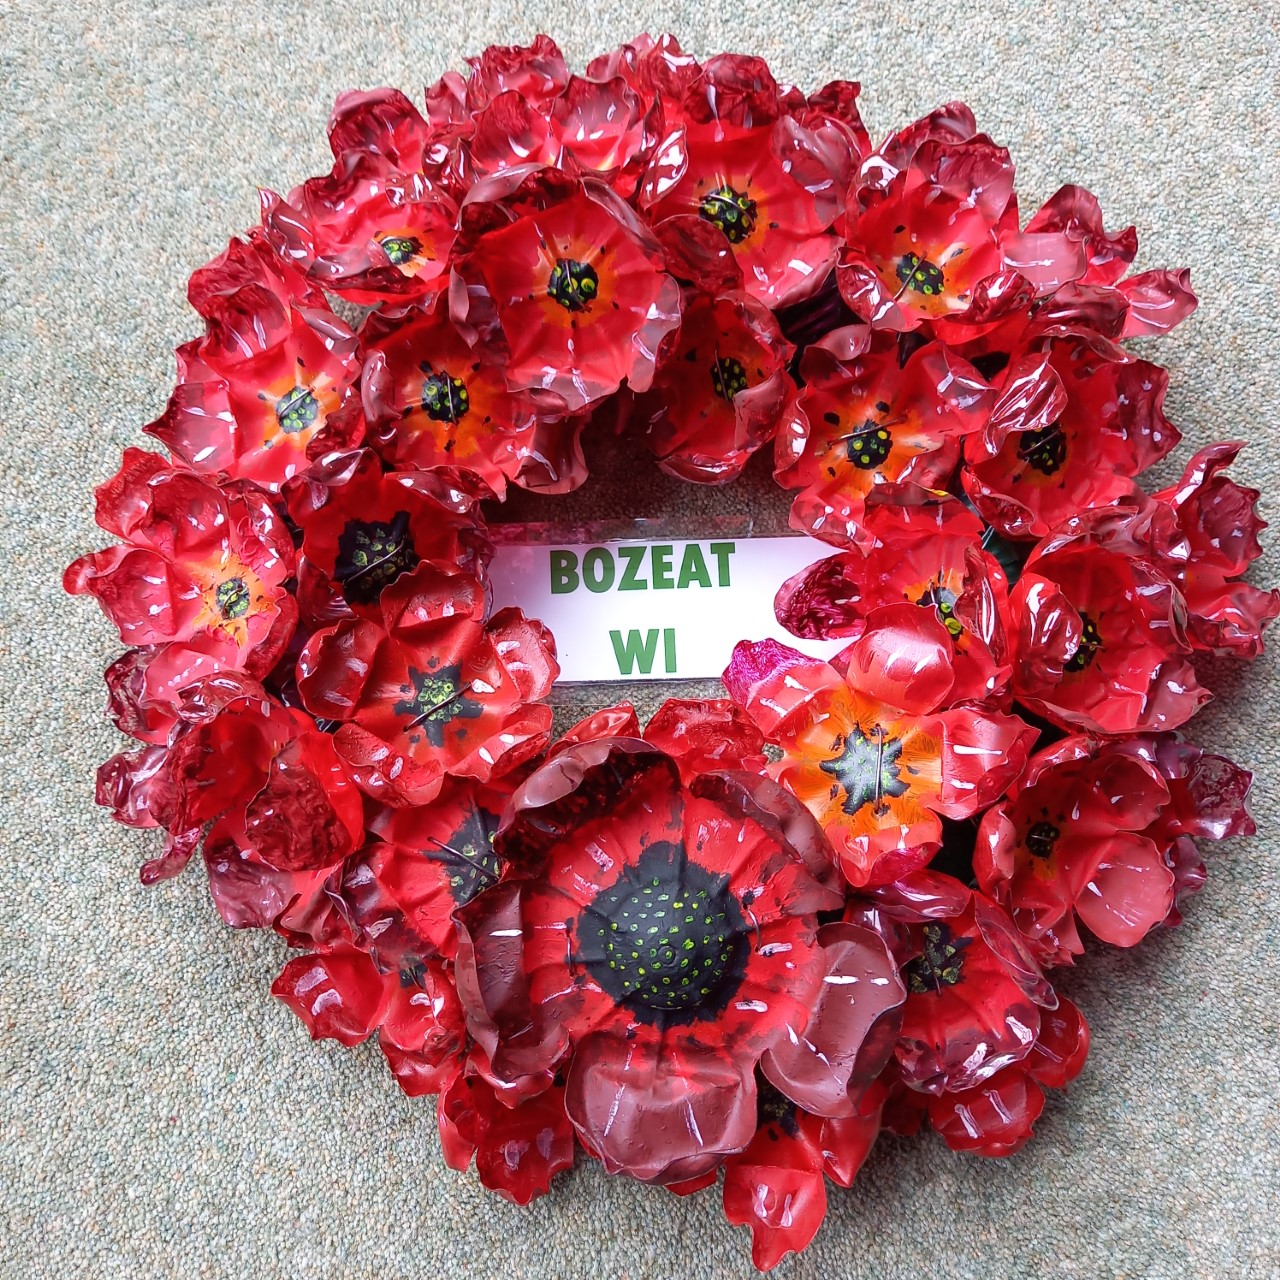 20.11 Wreath made from recycled plastic bottles